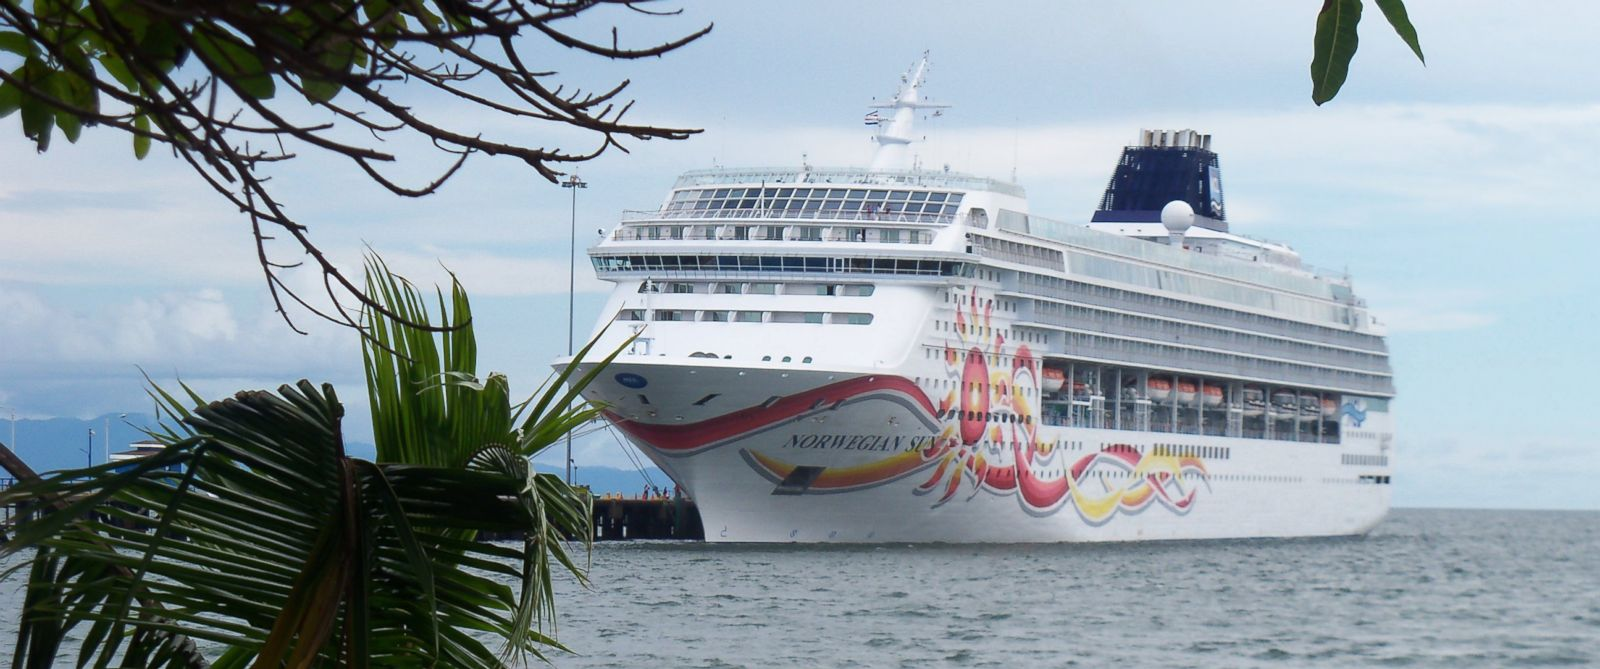 PHOTO: In this Oct. 19, 2014 file photo, the cruise ship Norwegian Sun is docked for a shore day in Puntarenas, Costa Rica.